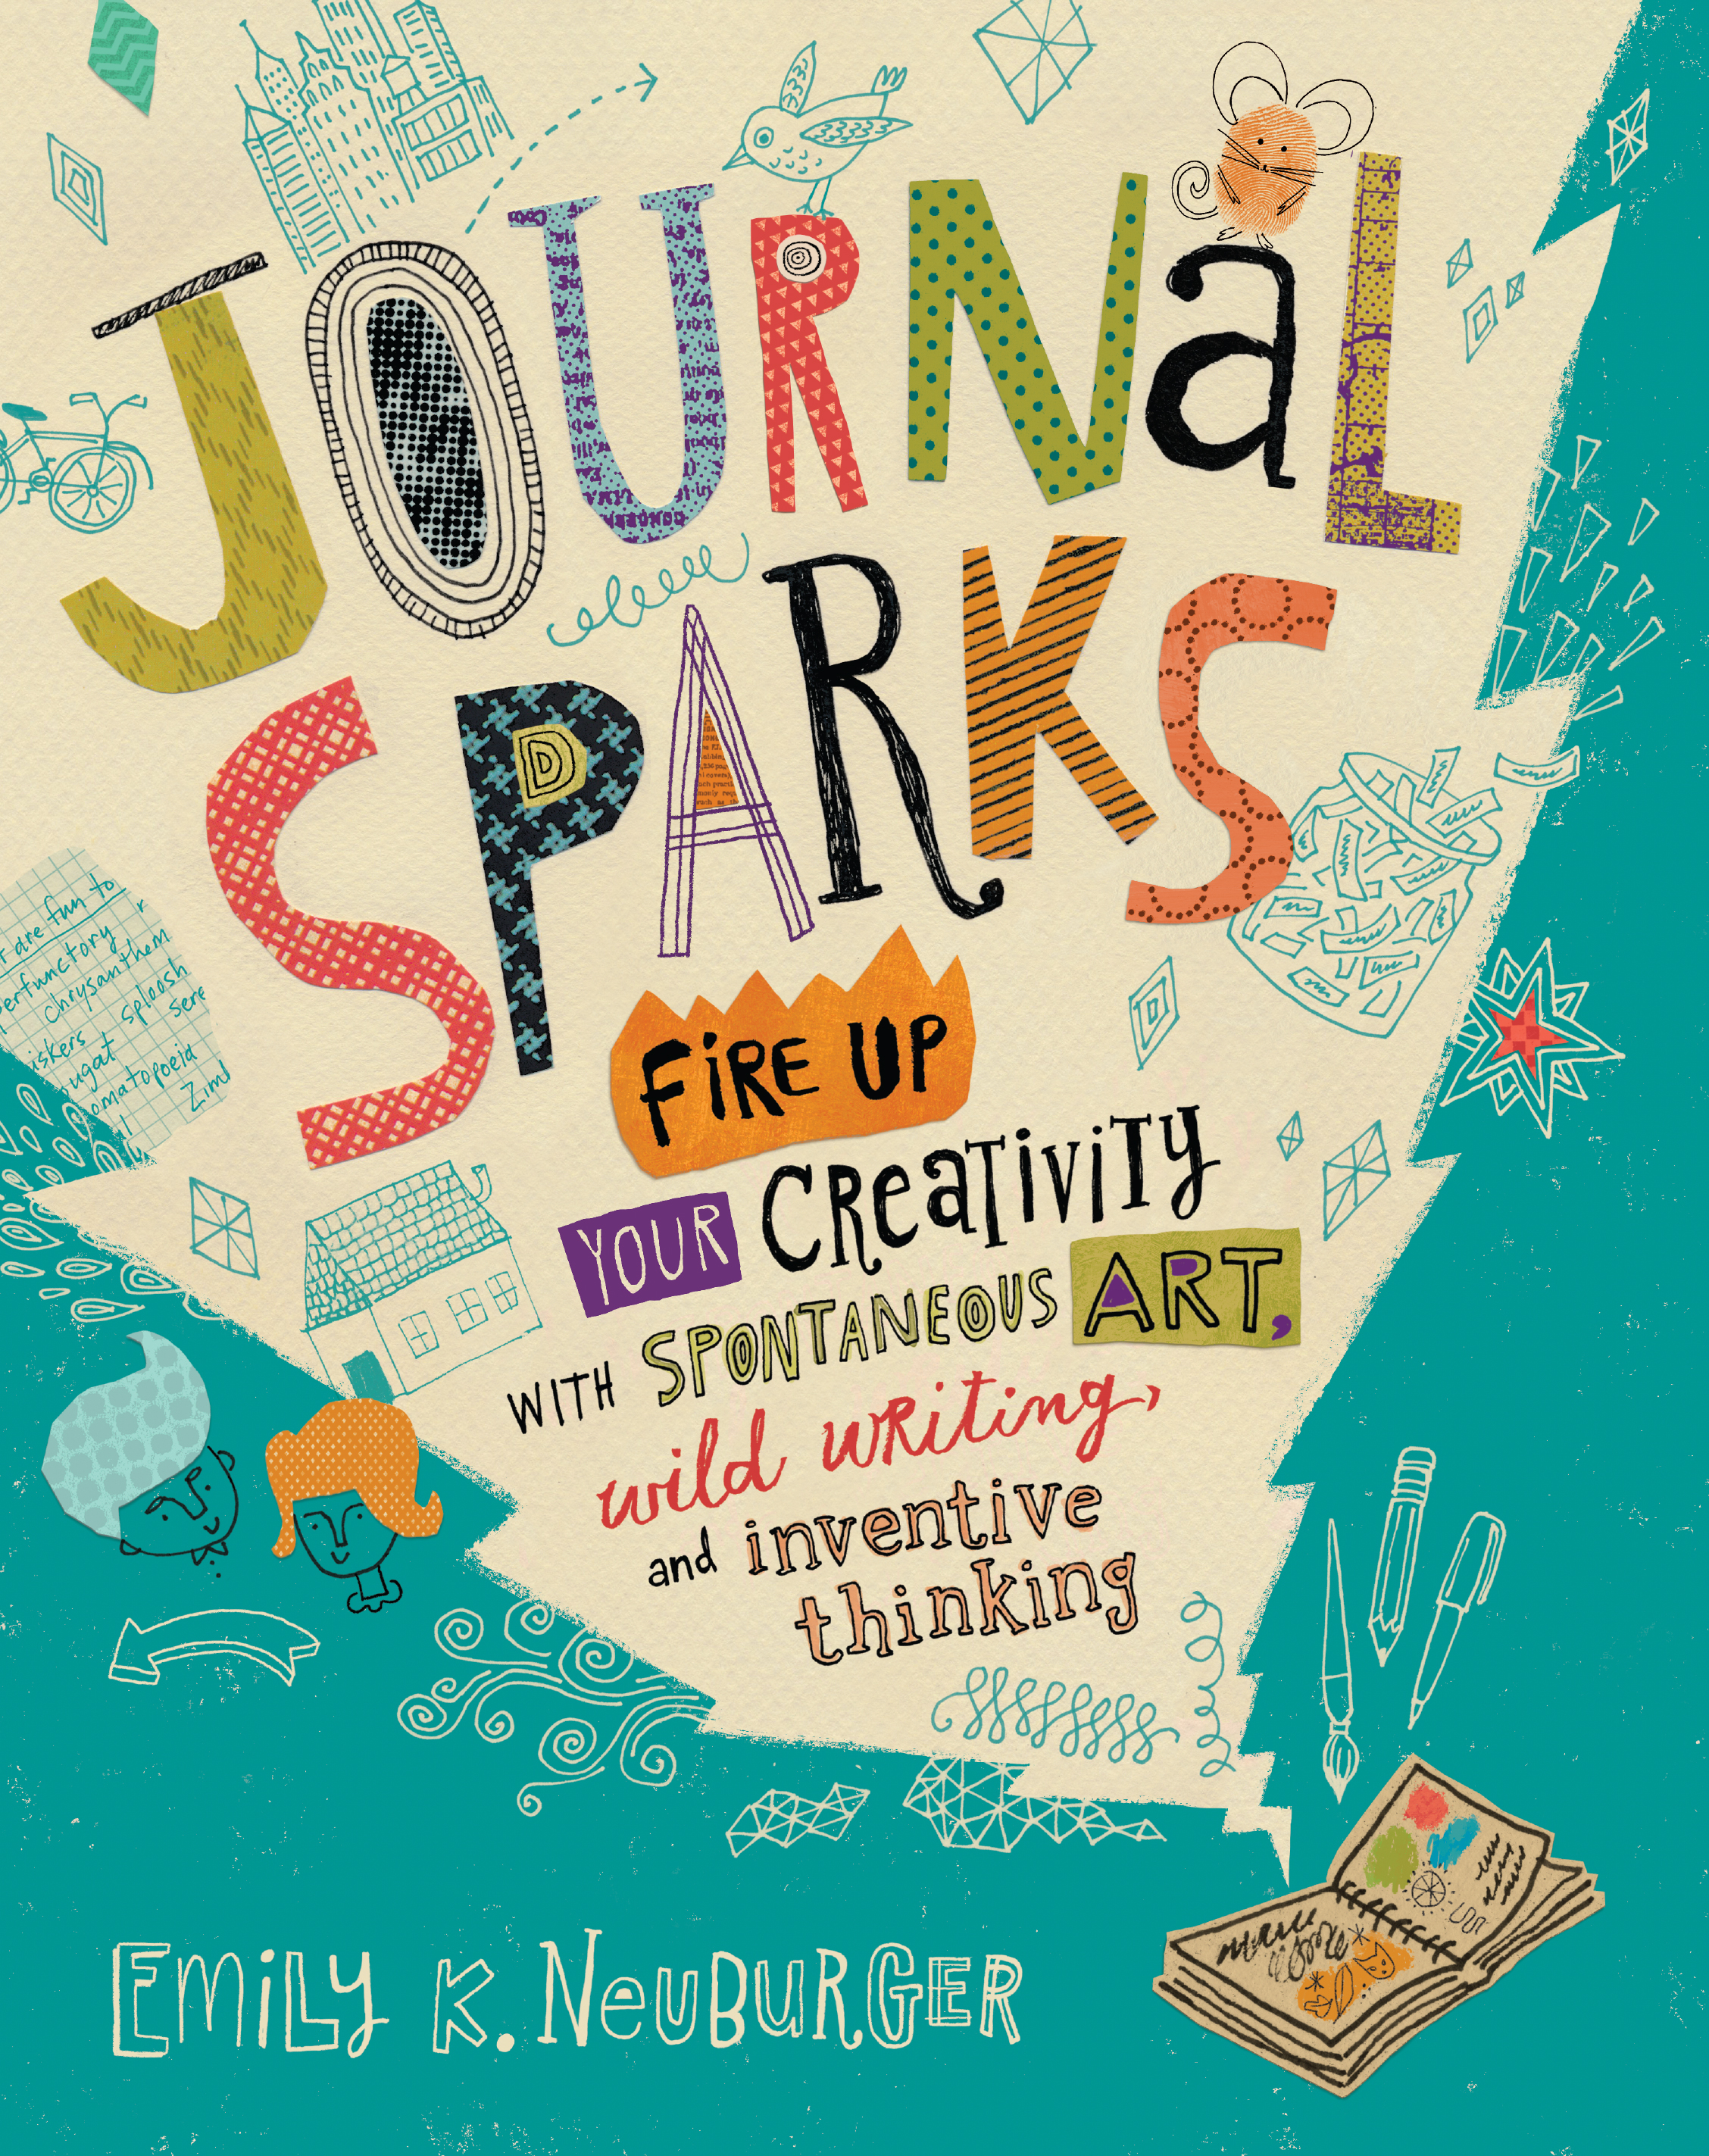 Journal Sparks Fire Up Your Creativity with Spontaneous Art, Wild Writing, and Inventive Thinking - Emily K. Neuburger